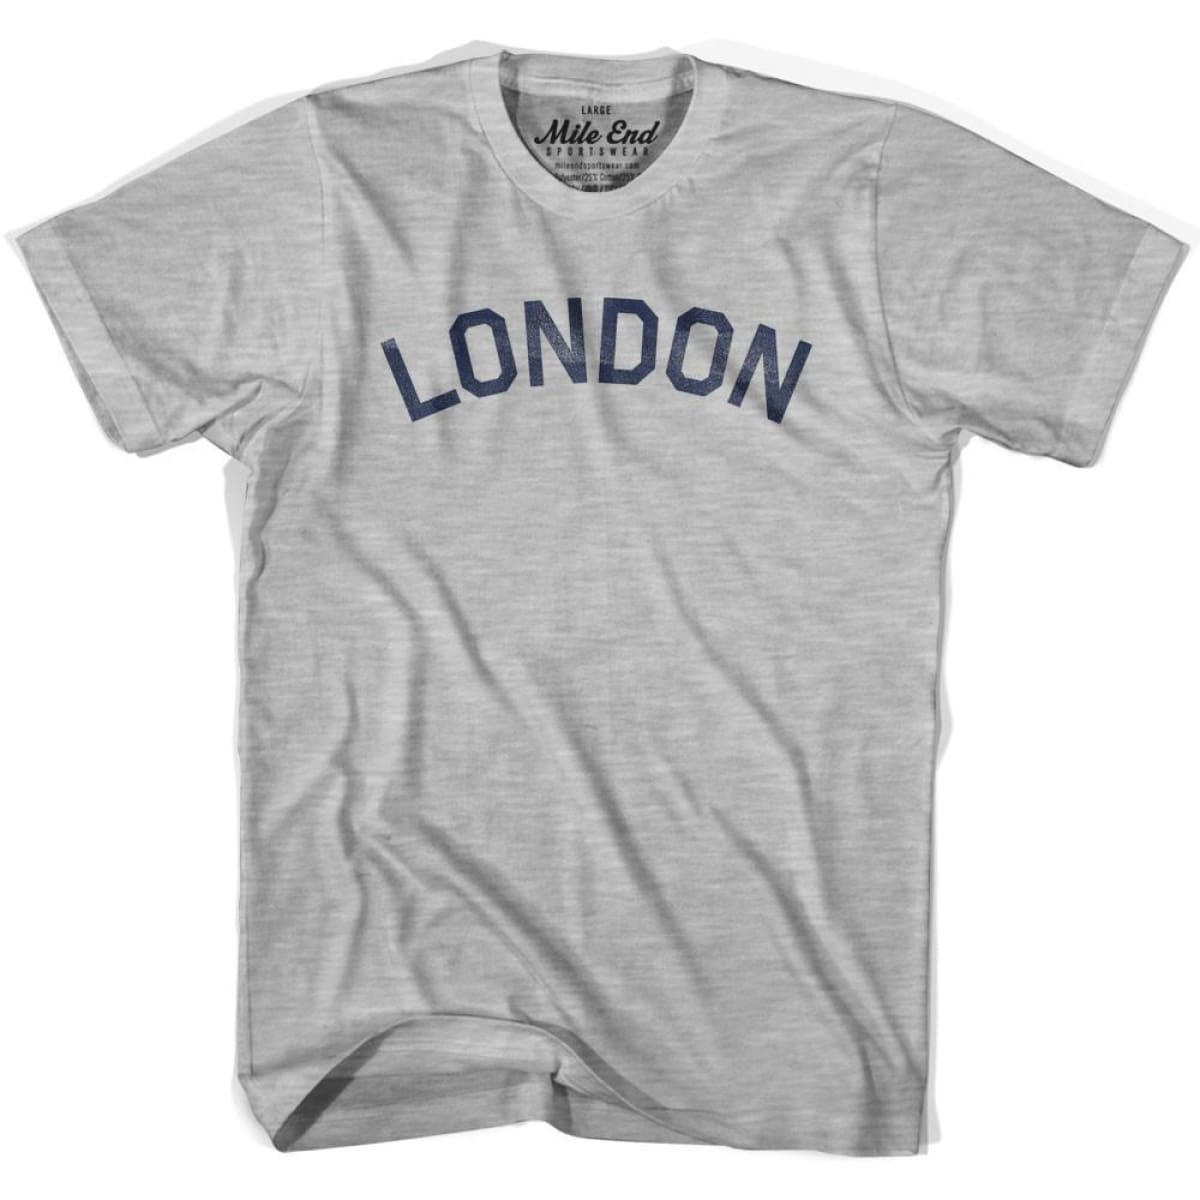 London City Vintage T-shirt - Grey Heather / Youth X-Small - Mile End City